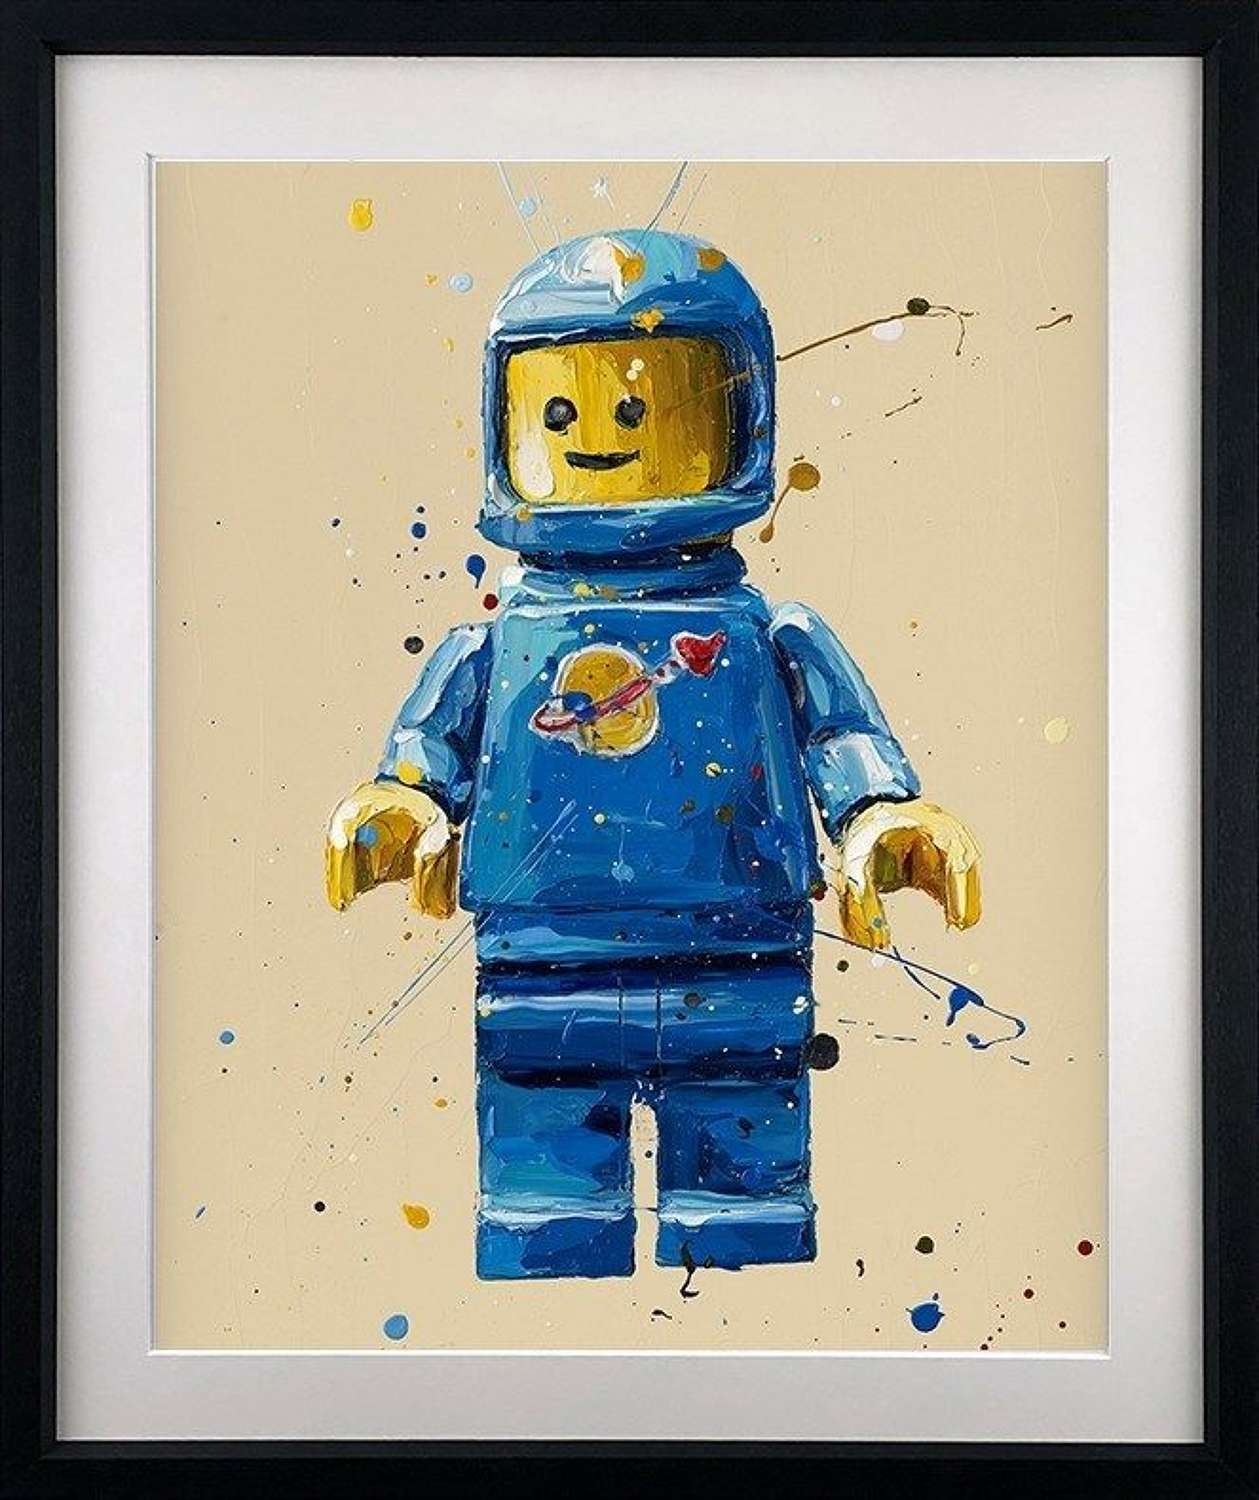 Blue Lego Man - Framed Paper Art Print By Paul Oz